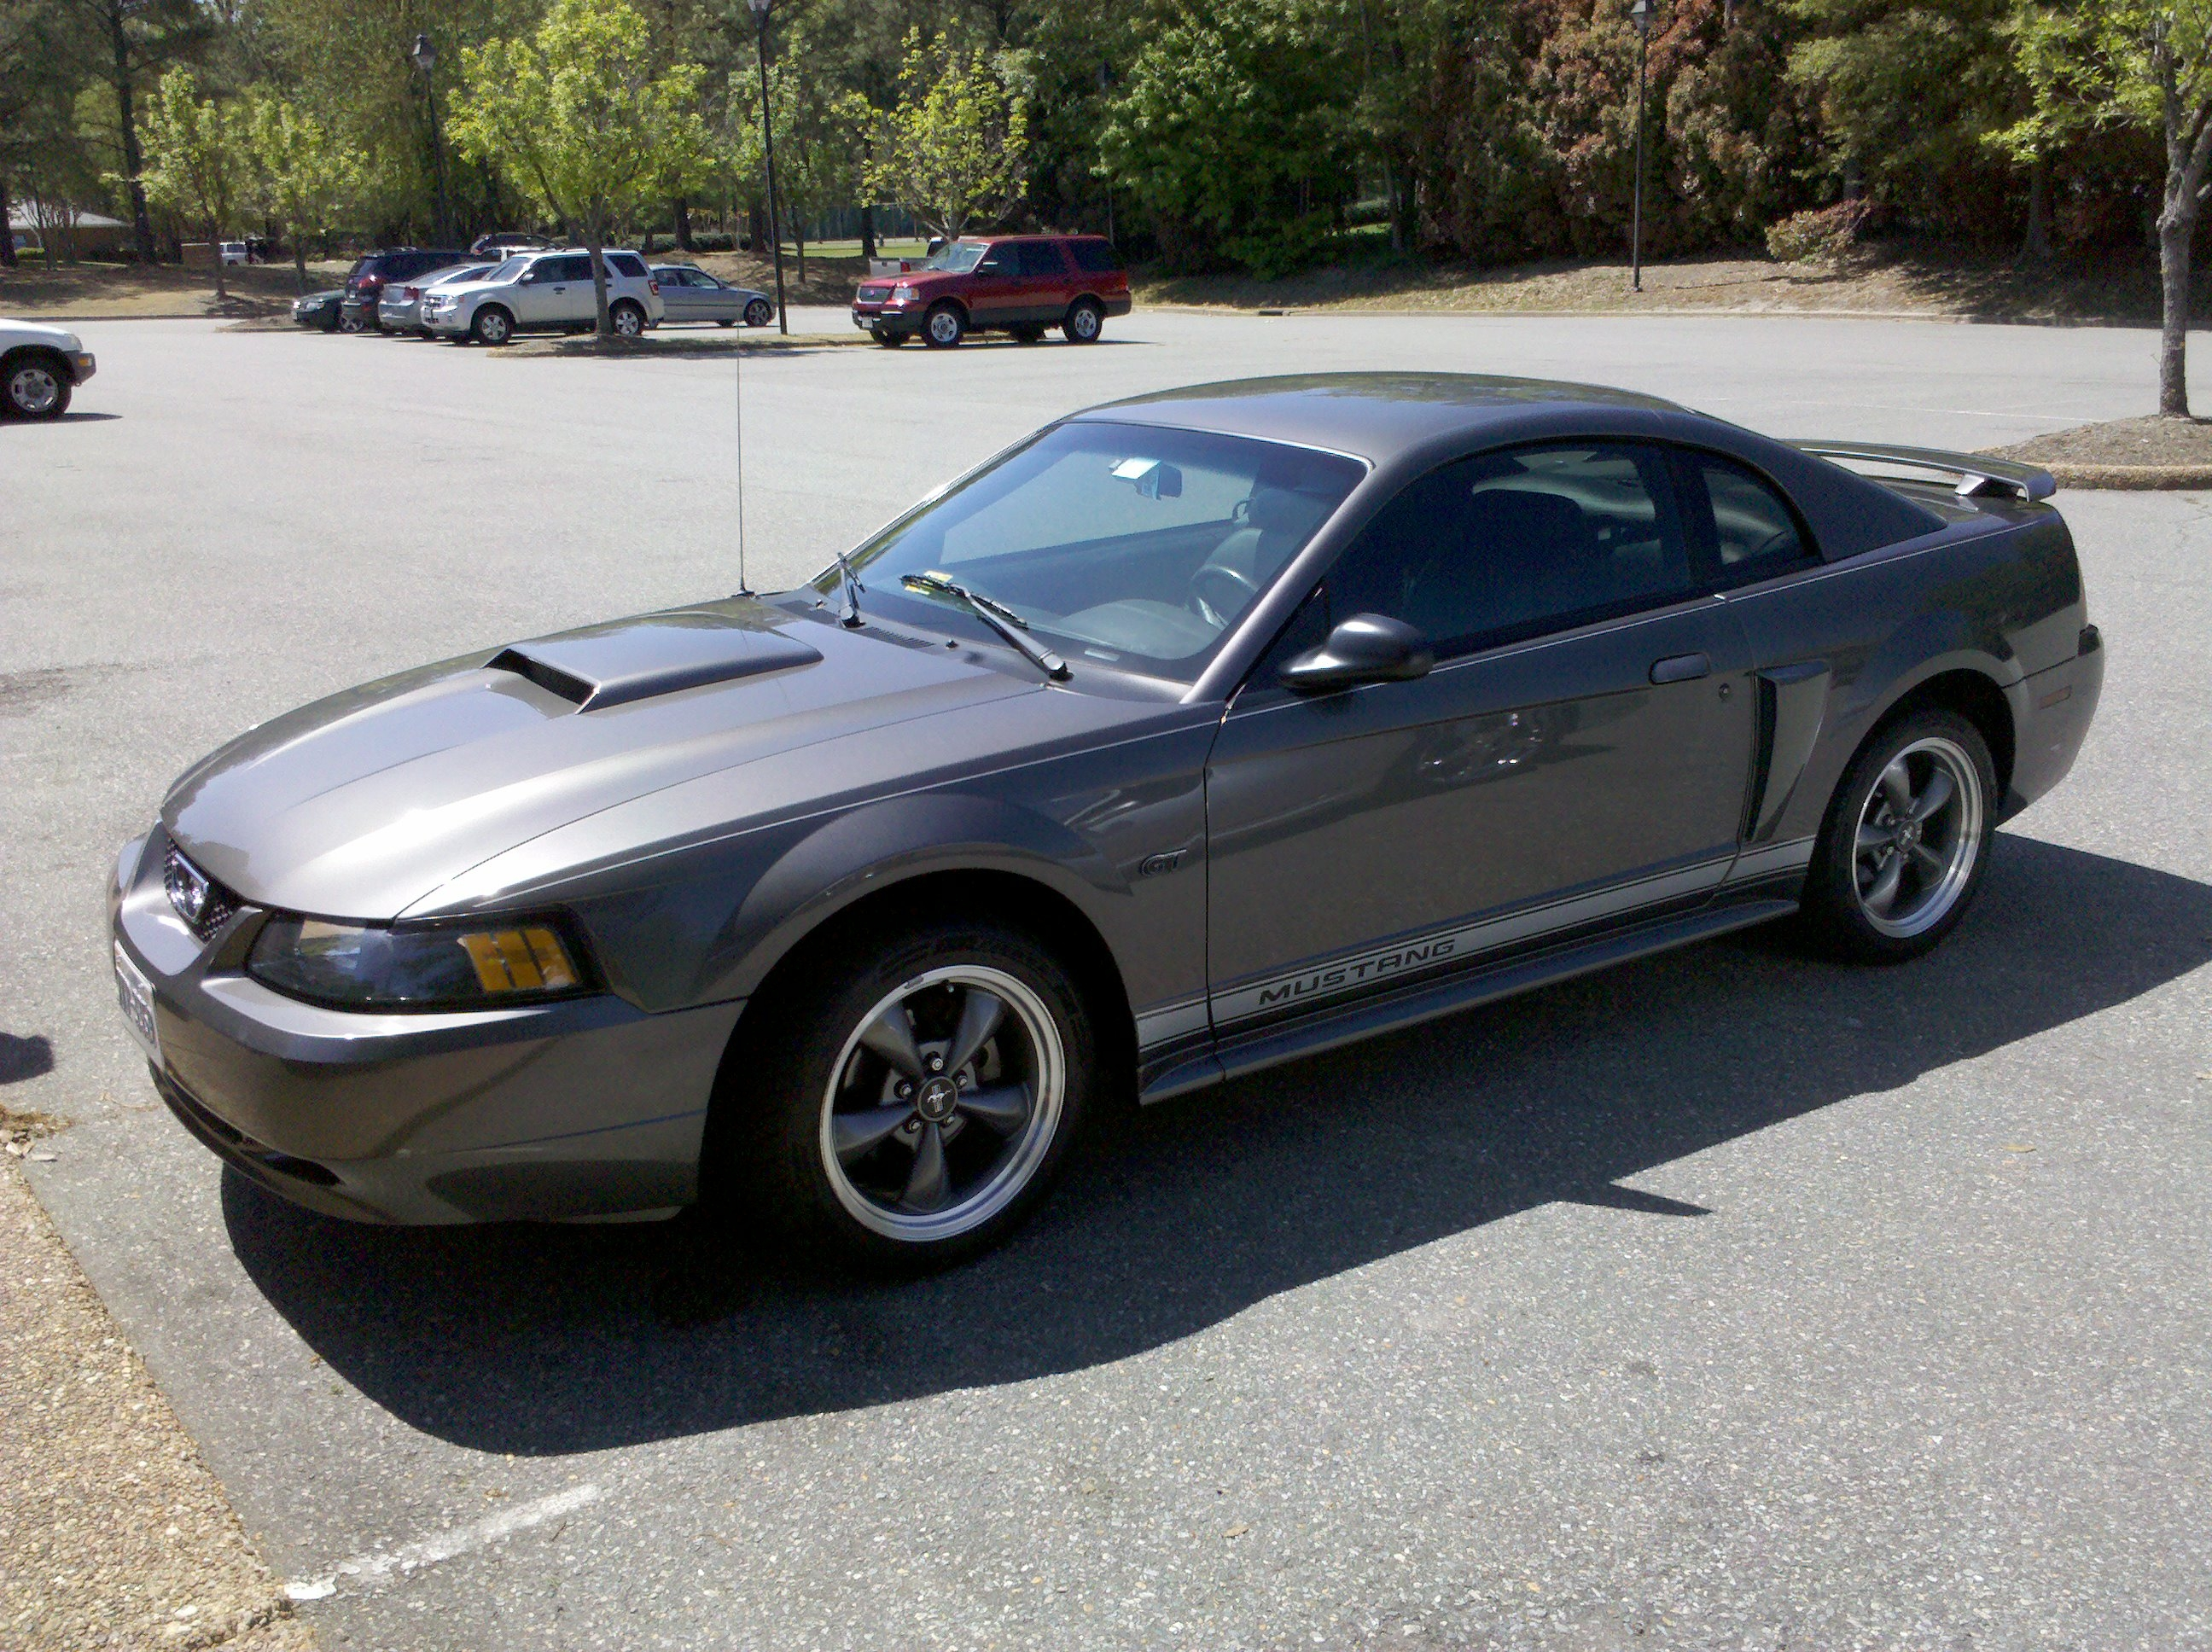 03mustang33 39 s 2003 ford mustang gt deluxe coupe 2d in odu va. Black Bedroom Furniture Sets. Home Design Ideas